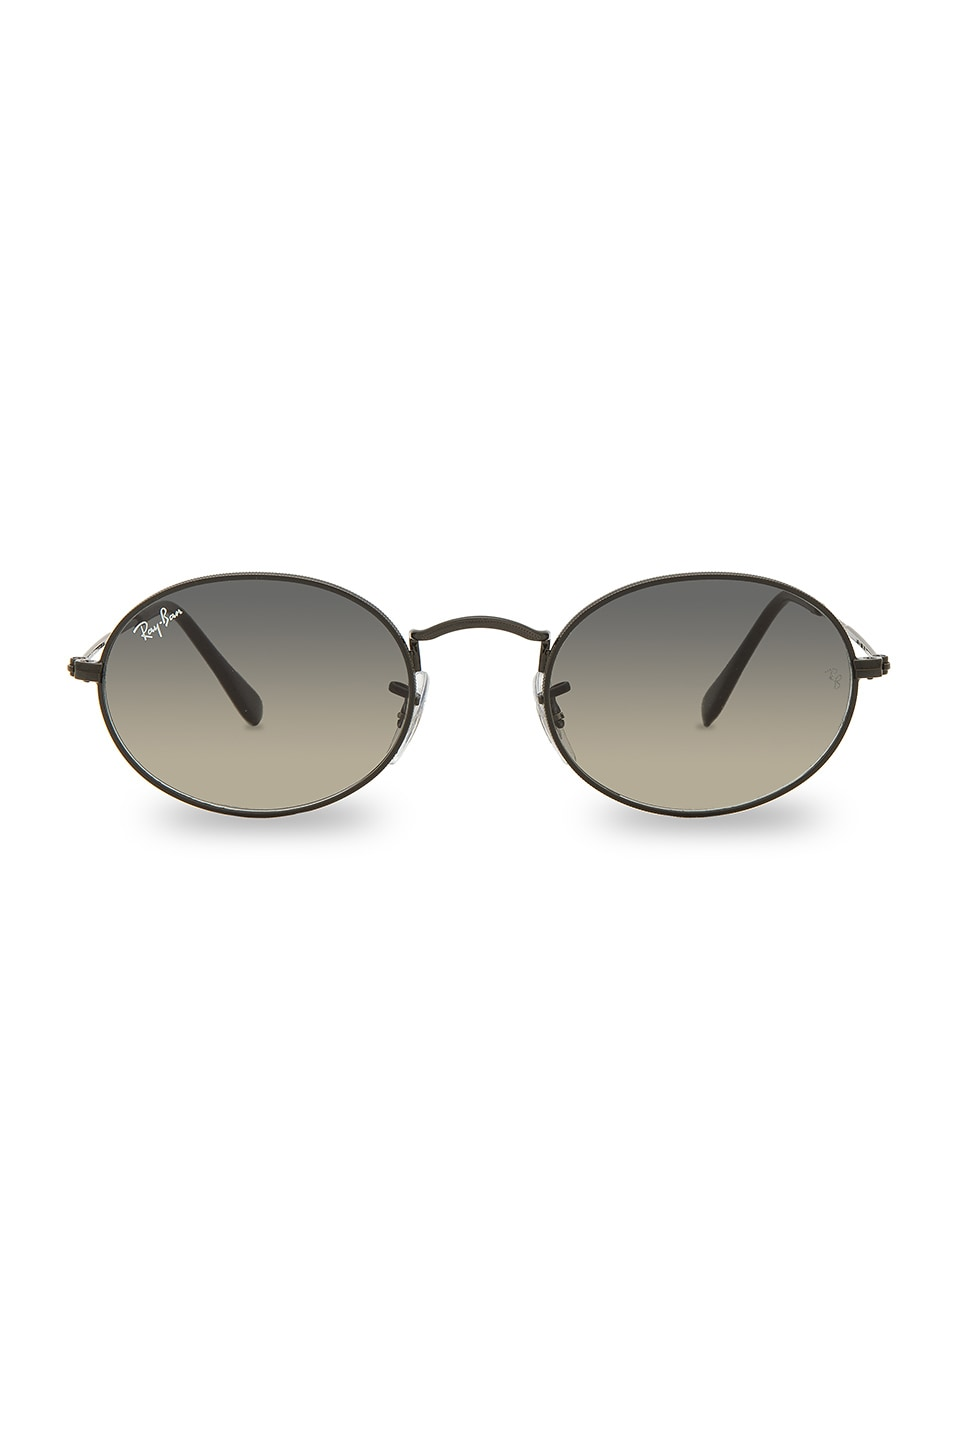 Ray-Ban Oval Flat in Black, Nero & Gray Green